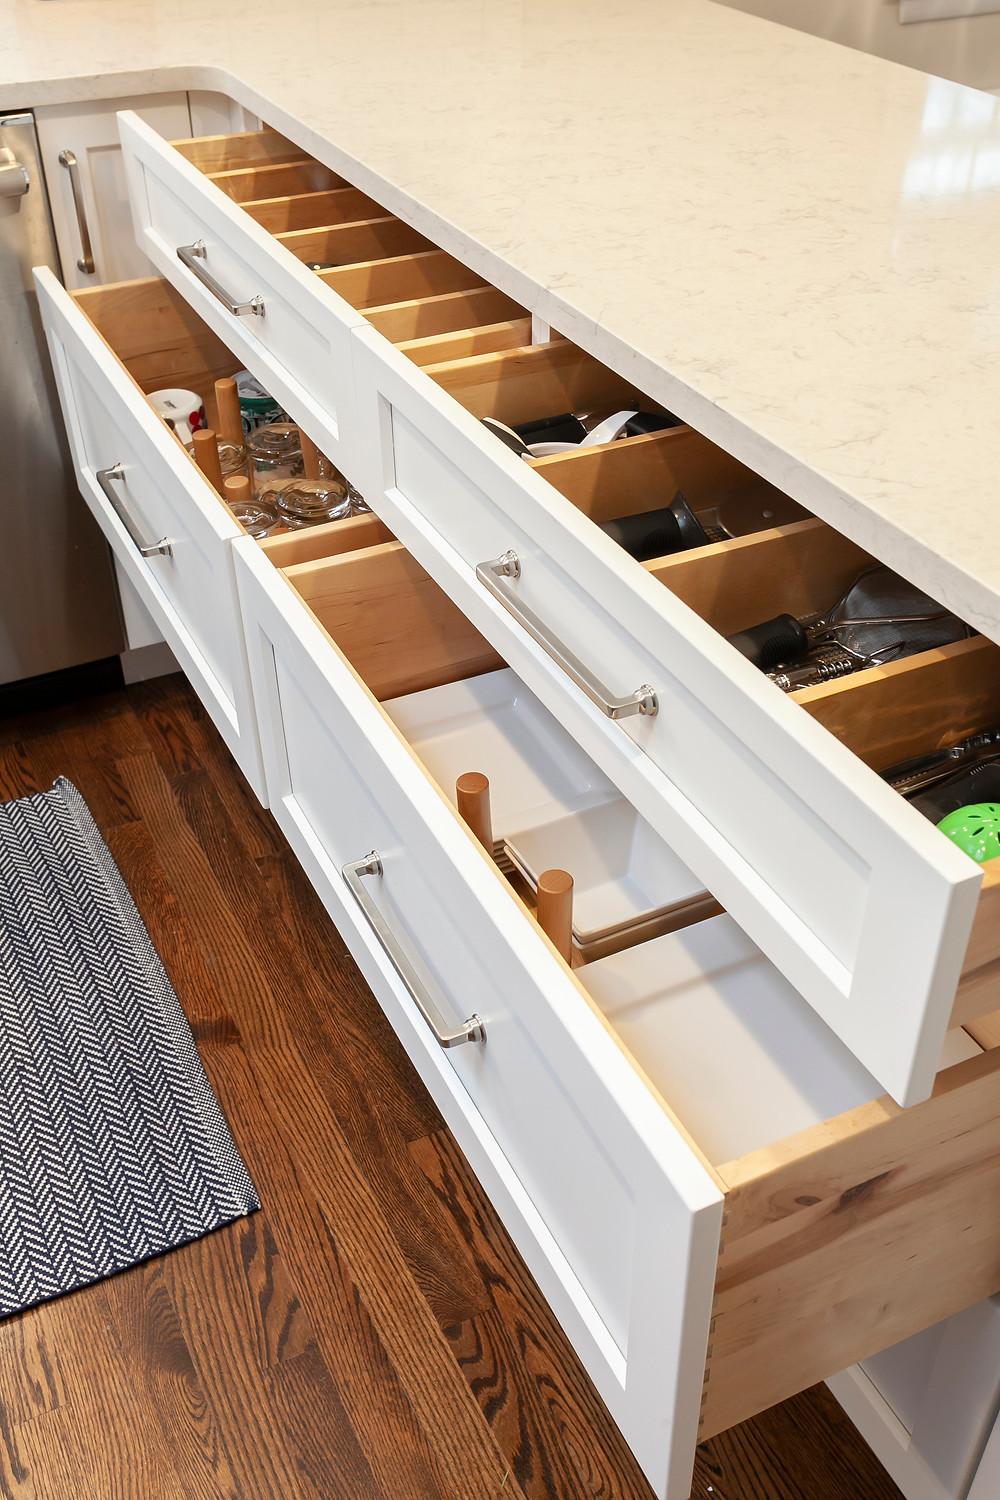 Kitchen cabinets with drawers and organizational pullouts